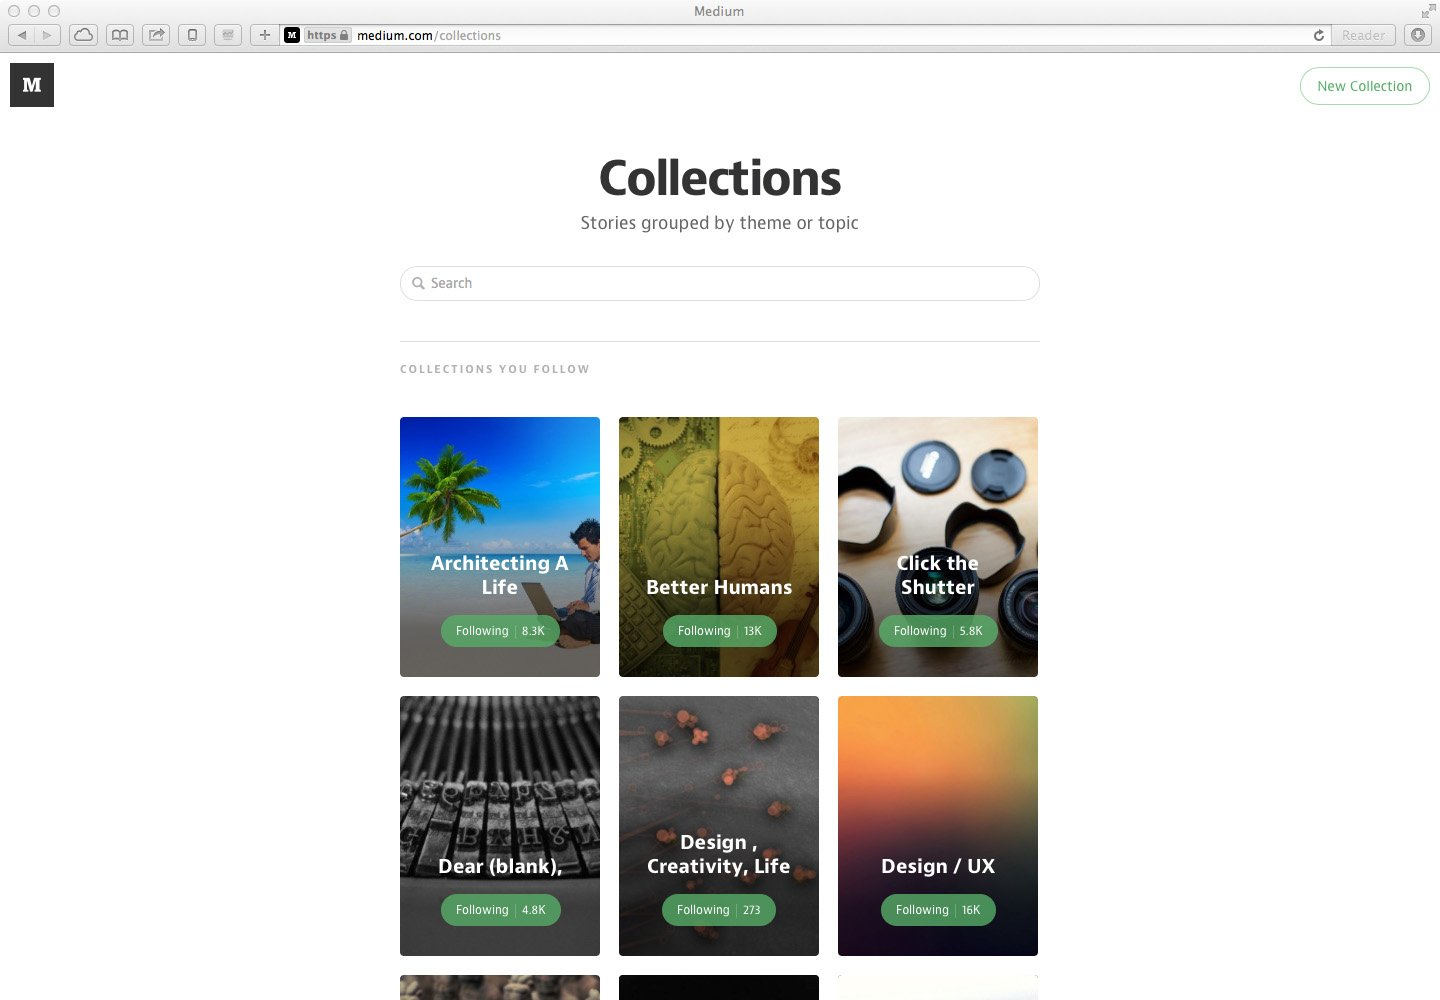 Medium - Post collections